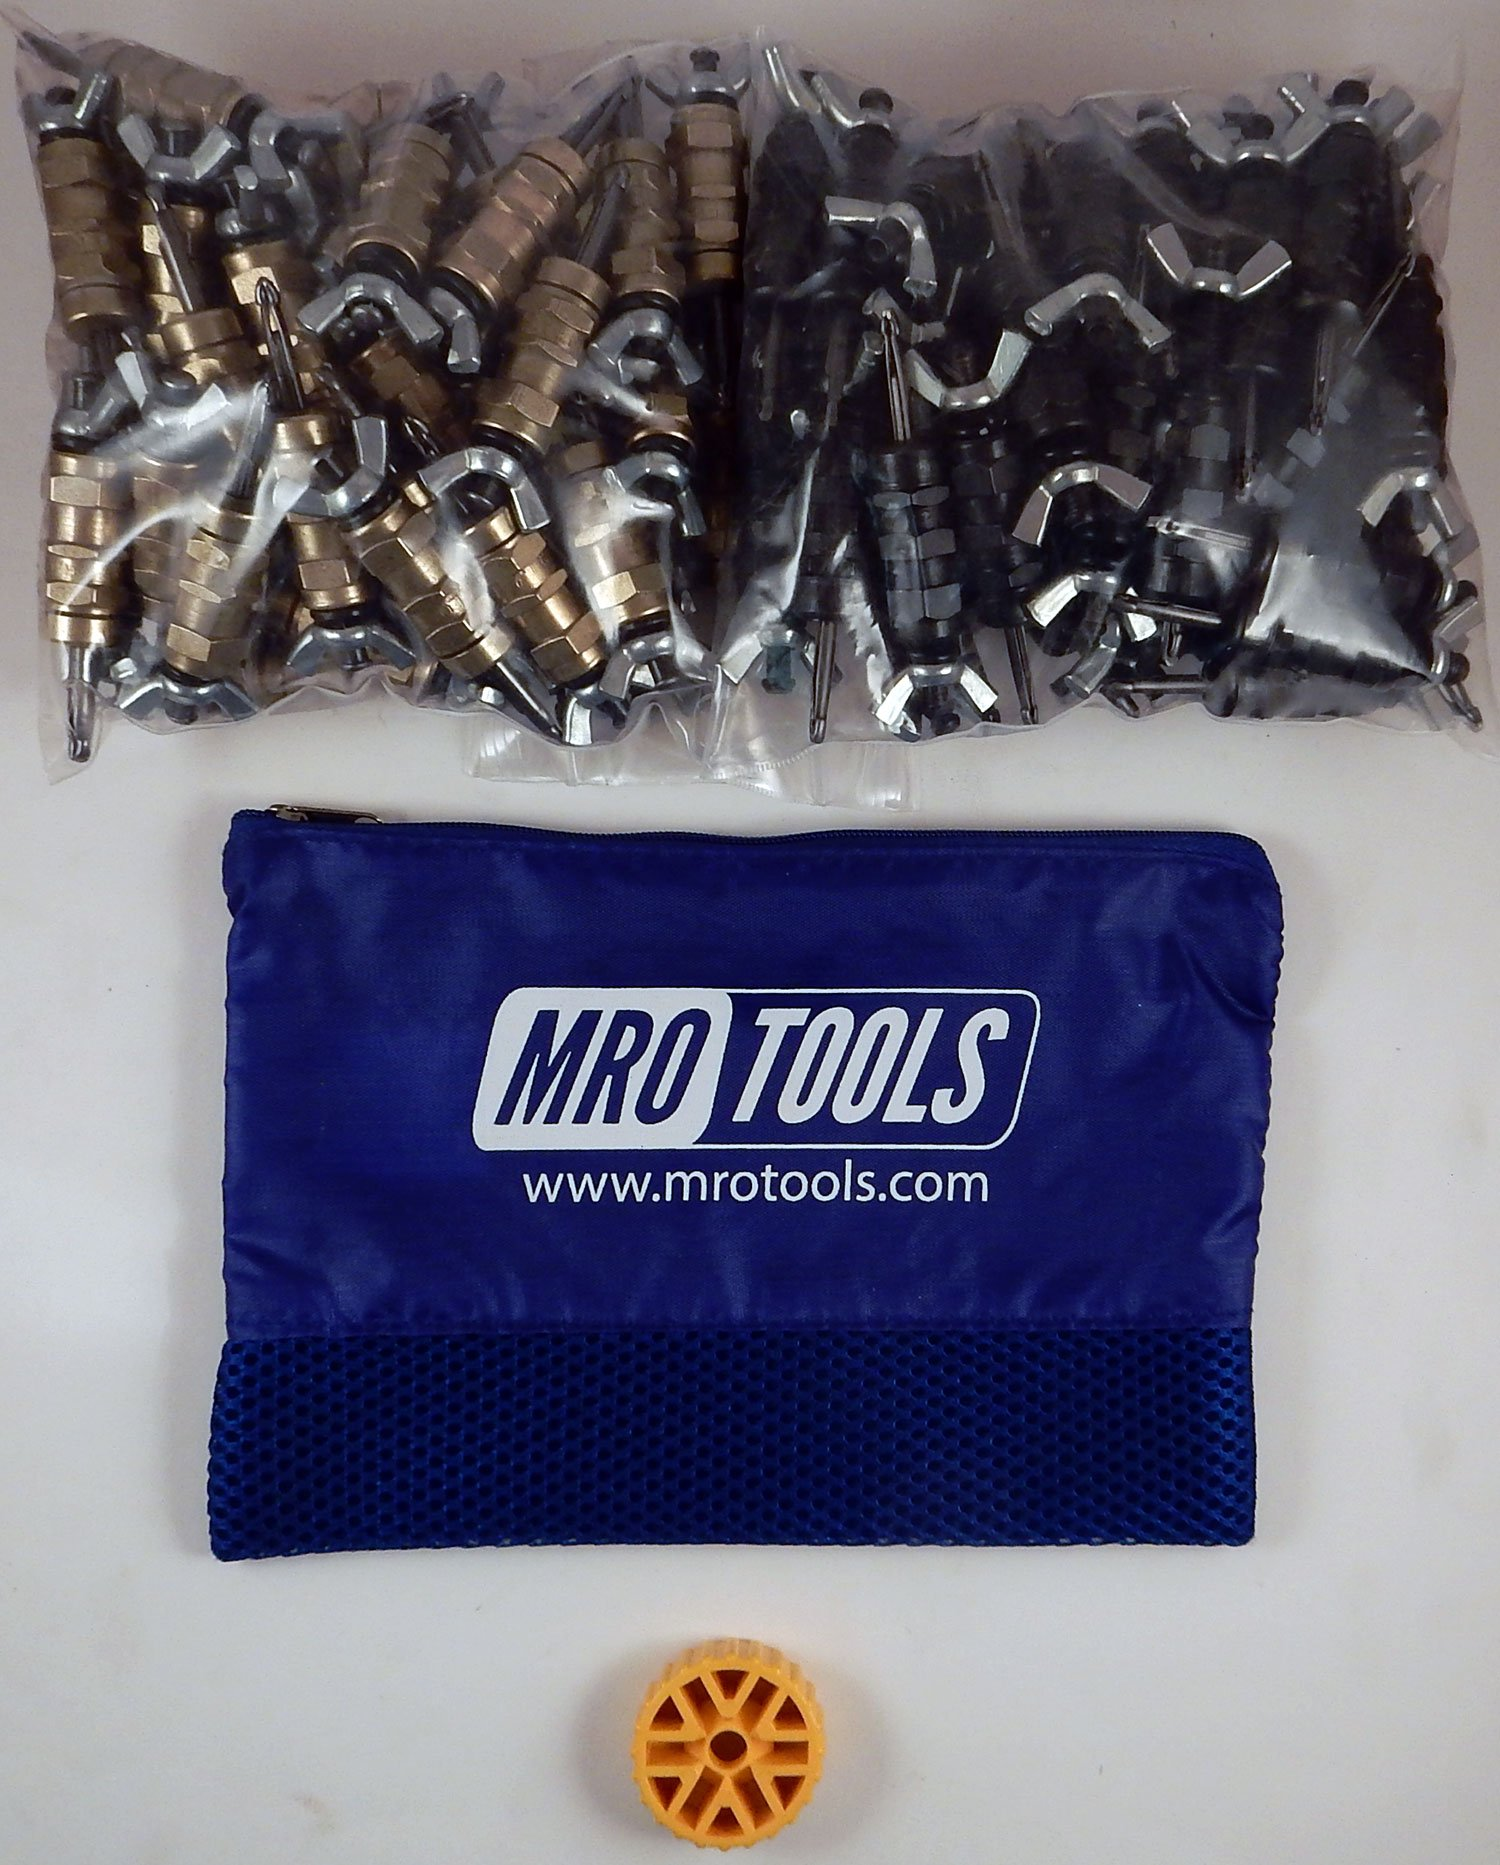 50 3/16 & 50 5/32 Standard Wing-Nut Cleco Fastener HBHT Tool & Bag (KWN4S100-4) by MRO Tools Cleco Fasteners